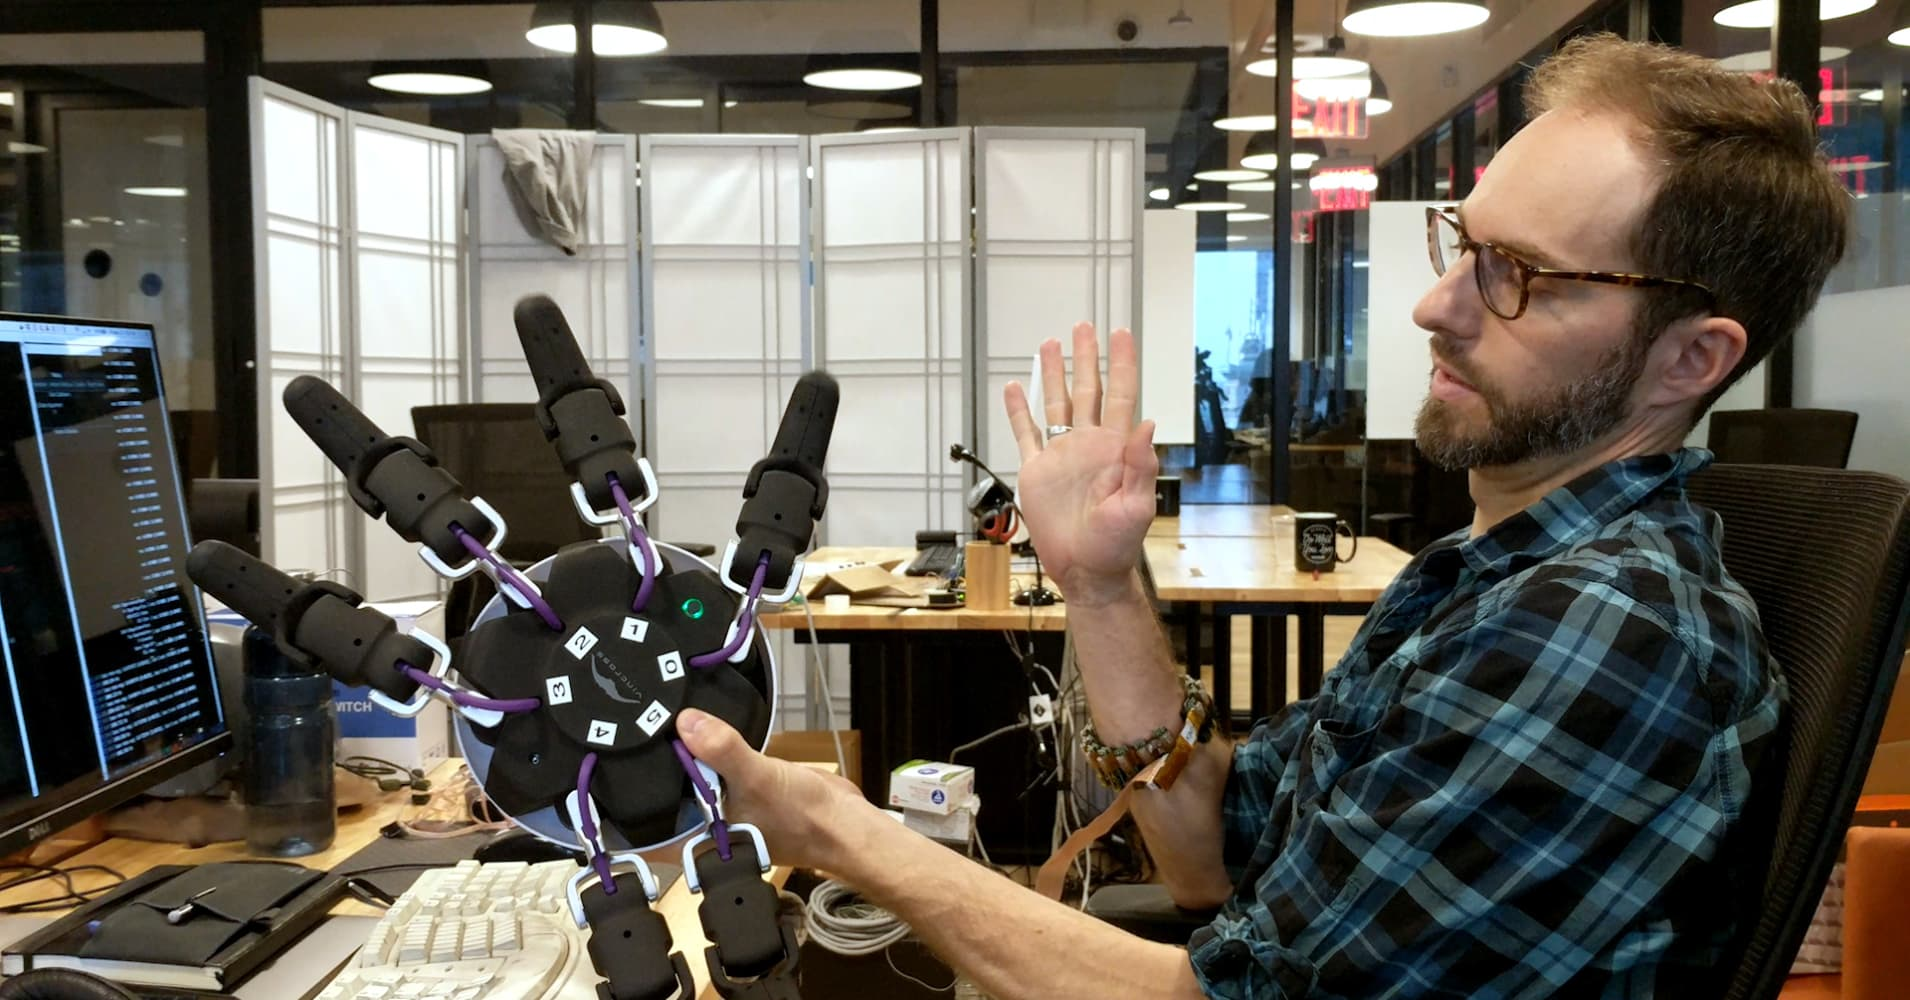 This Wristband Lets Humans Control Machines with their Minds